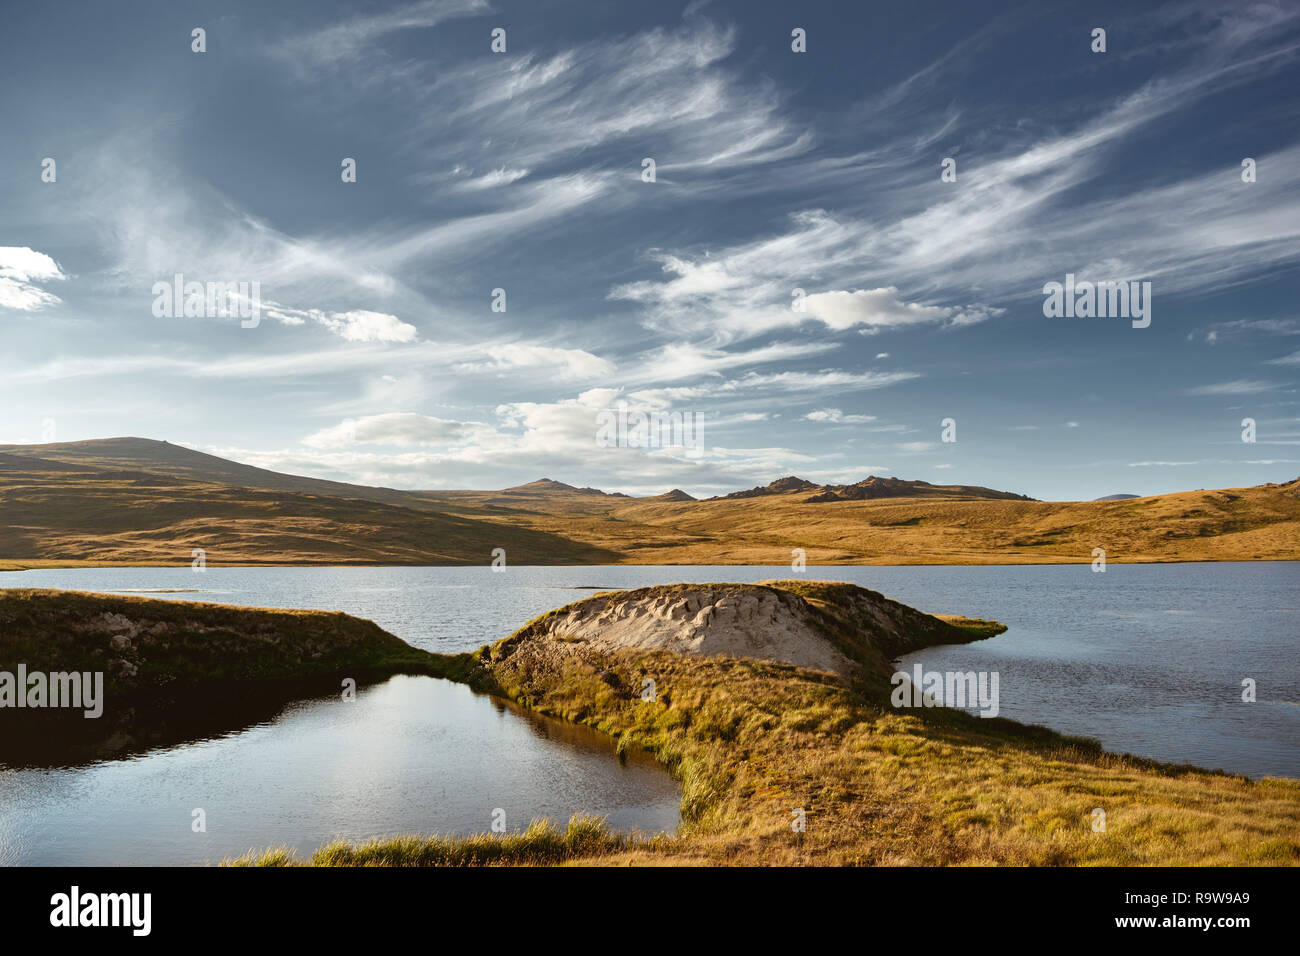 Beautiful landscape with lakes mountains and sky. Altai region, Siberia, Russia Stock Photo